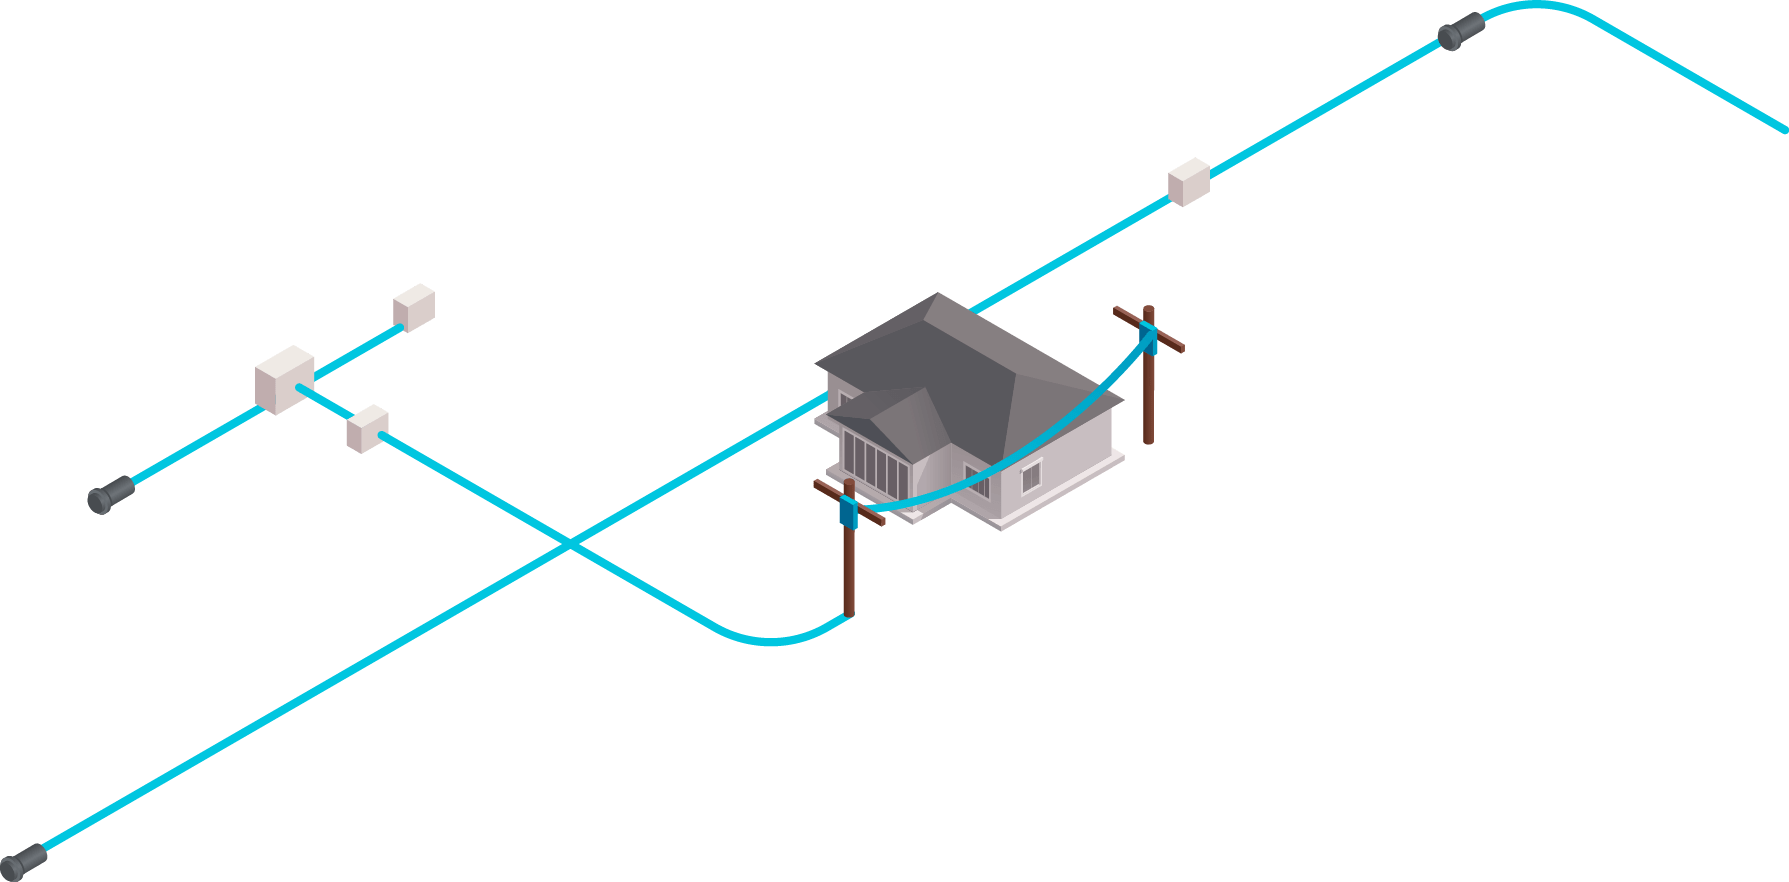 Ftth Fiber To The Home Fibero Optic Cables And Connectivity